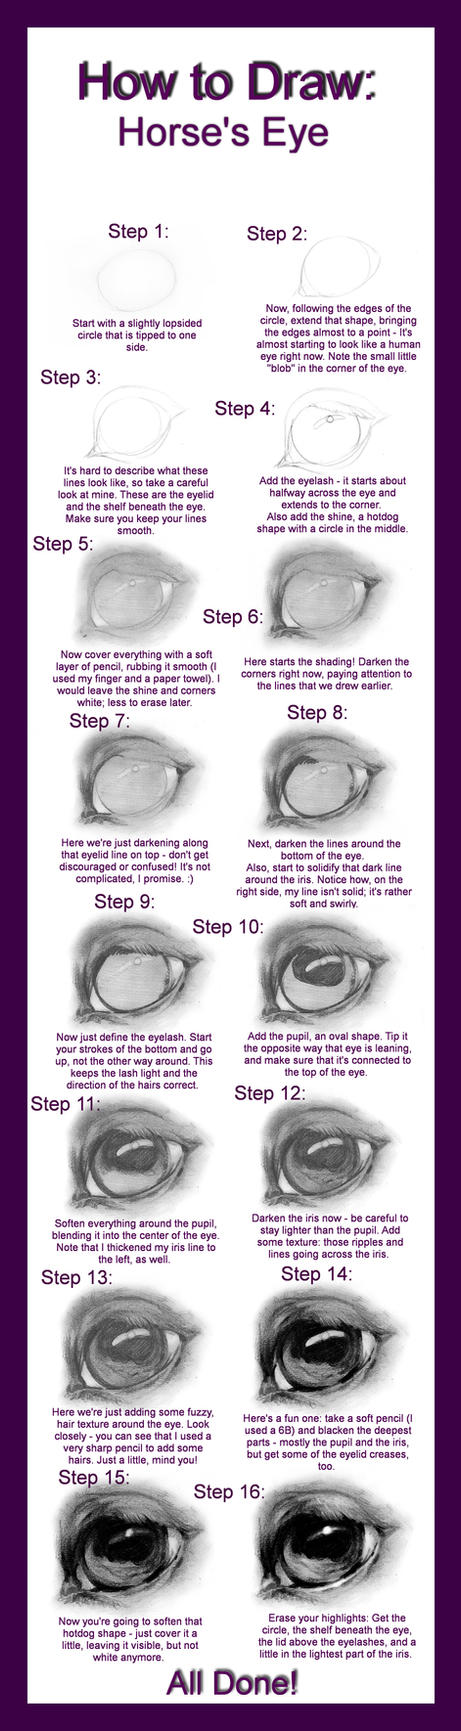 How to Draw: Horse's Eye by Define-X